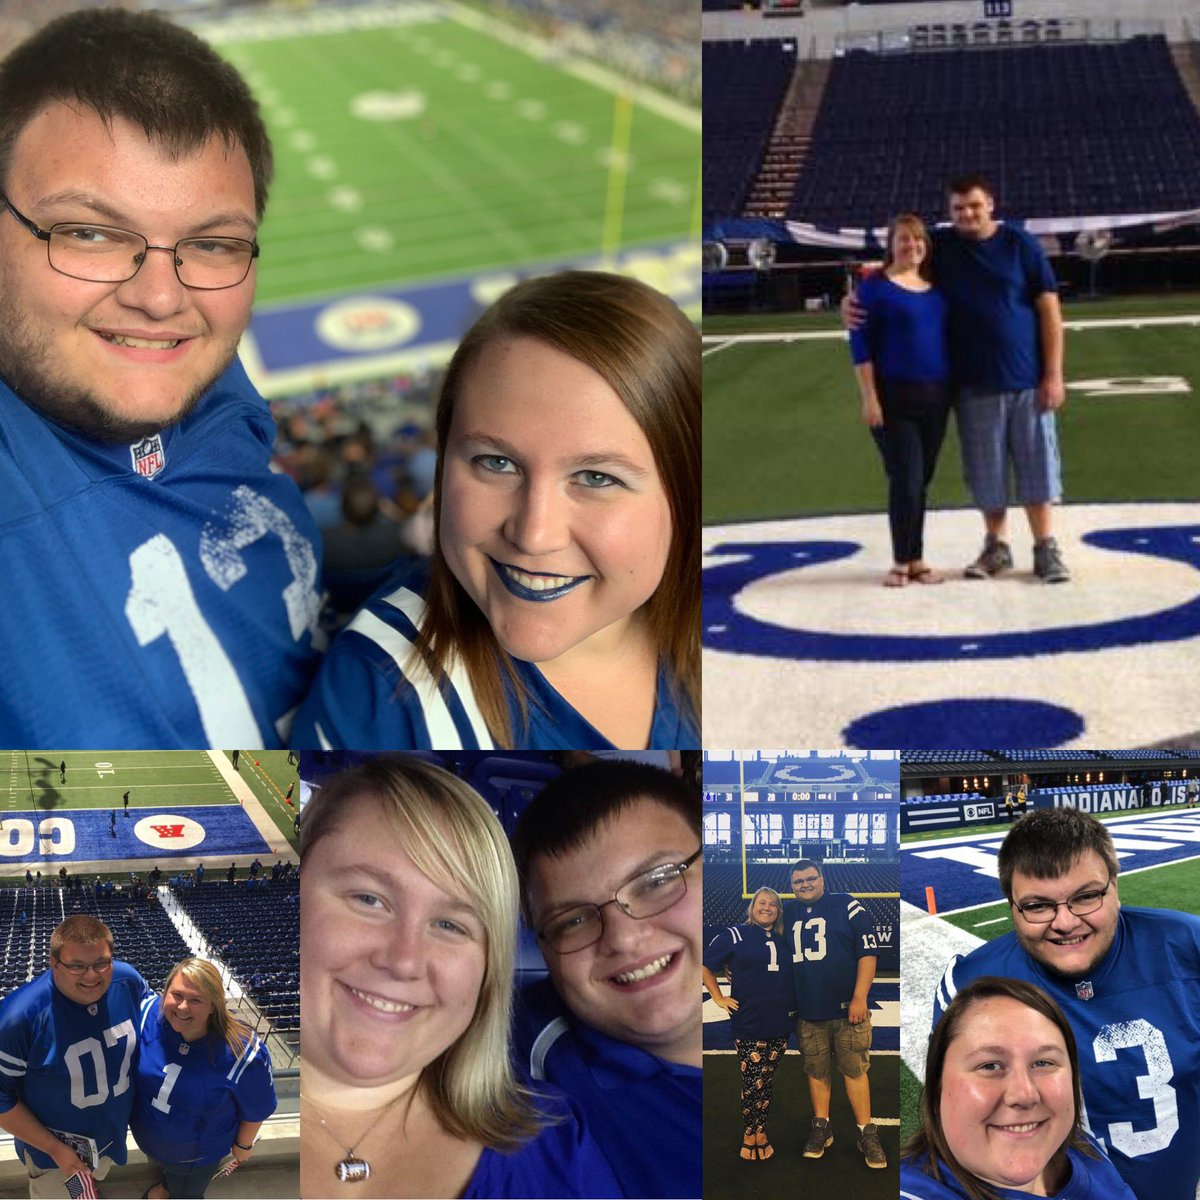 Our 6th season in love 💙 with each other and the @Colts! #ColtsStrong #ColtsForged #CLEvsIND https://t.co/b0jBJgvI9N